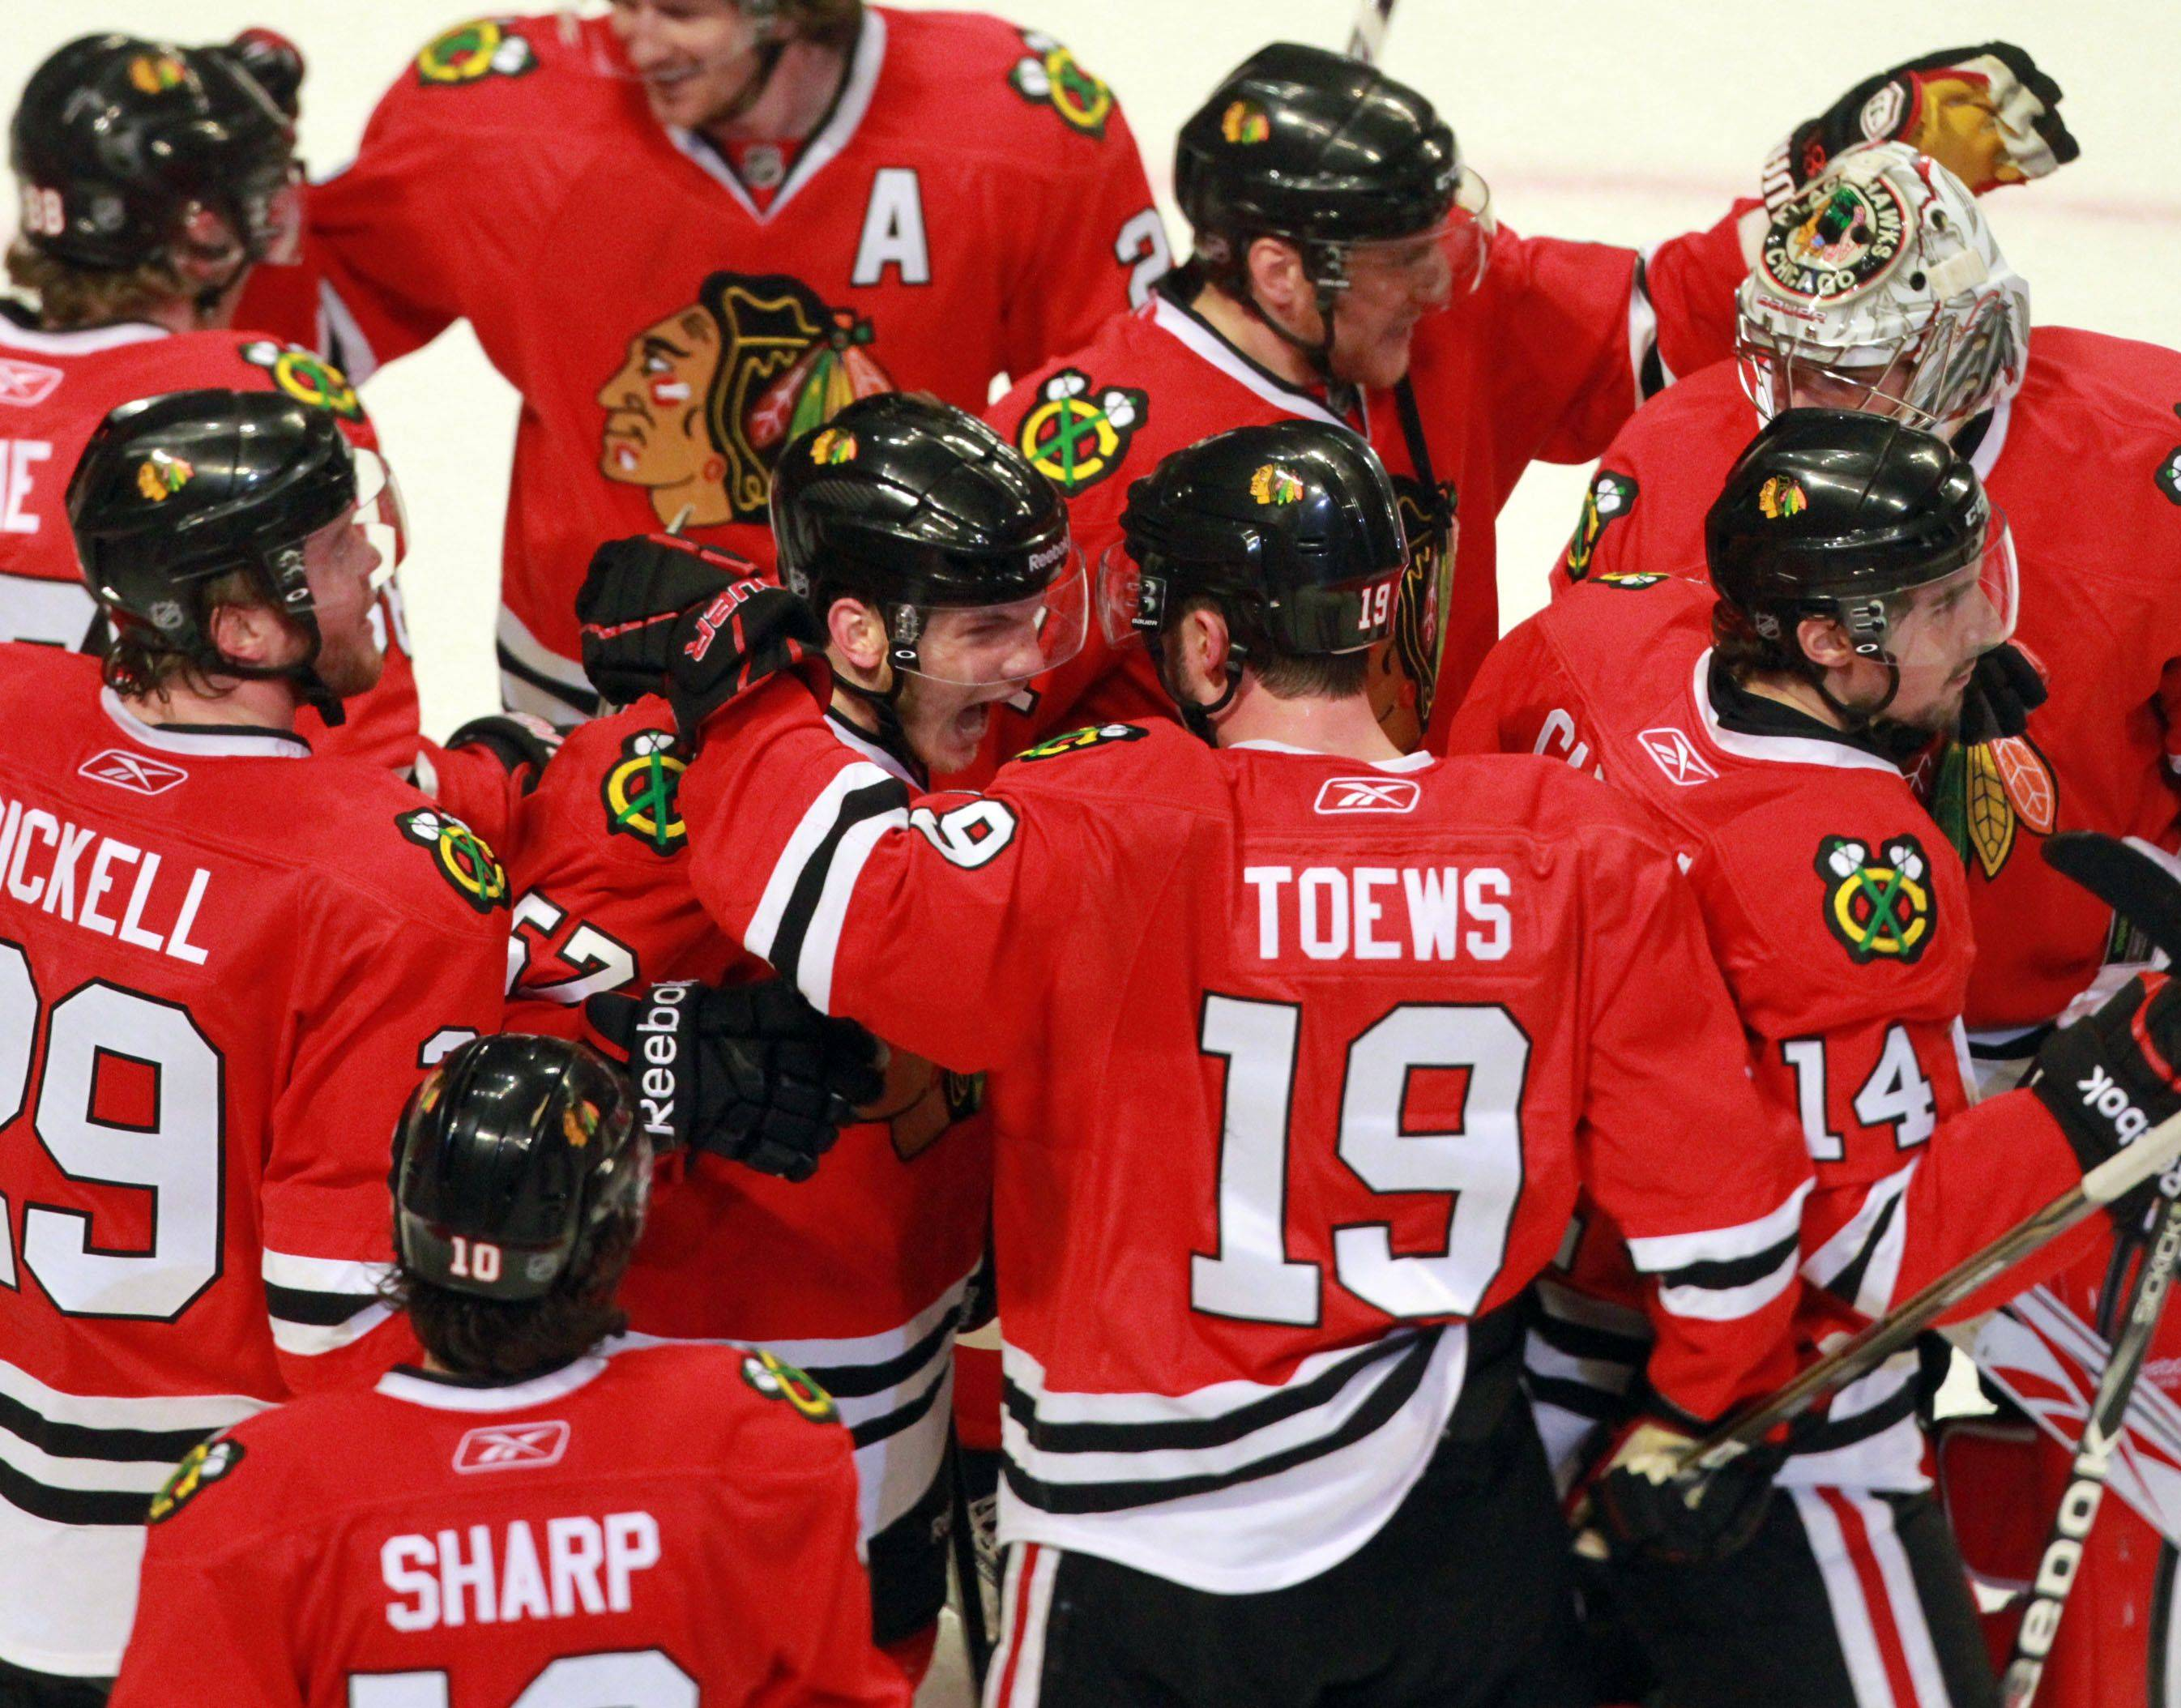 Chicago Blackhawks winning in overtime 4-3 against the Vancouver Canucks in game 6 of the Stanley Cup quarterfinals at the United Center in Chicago on Sunday.